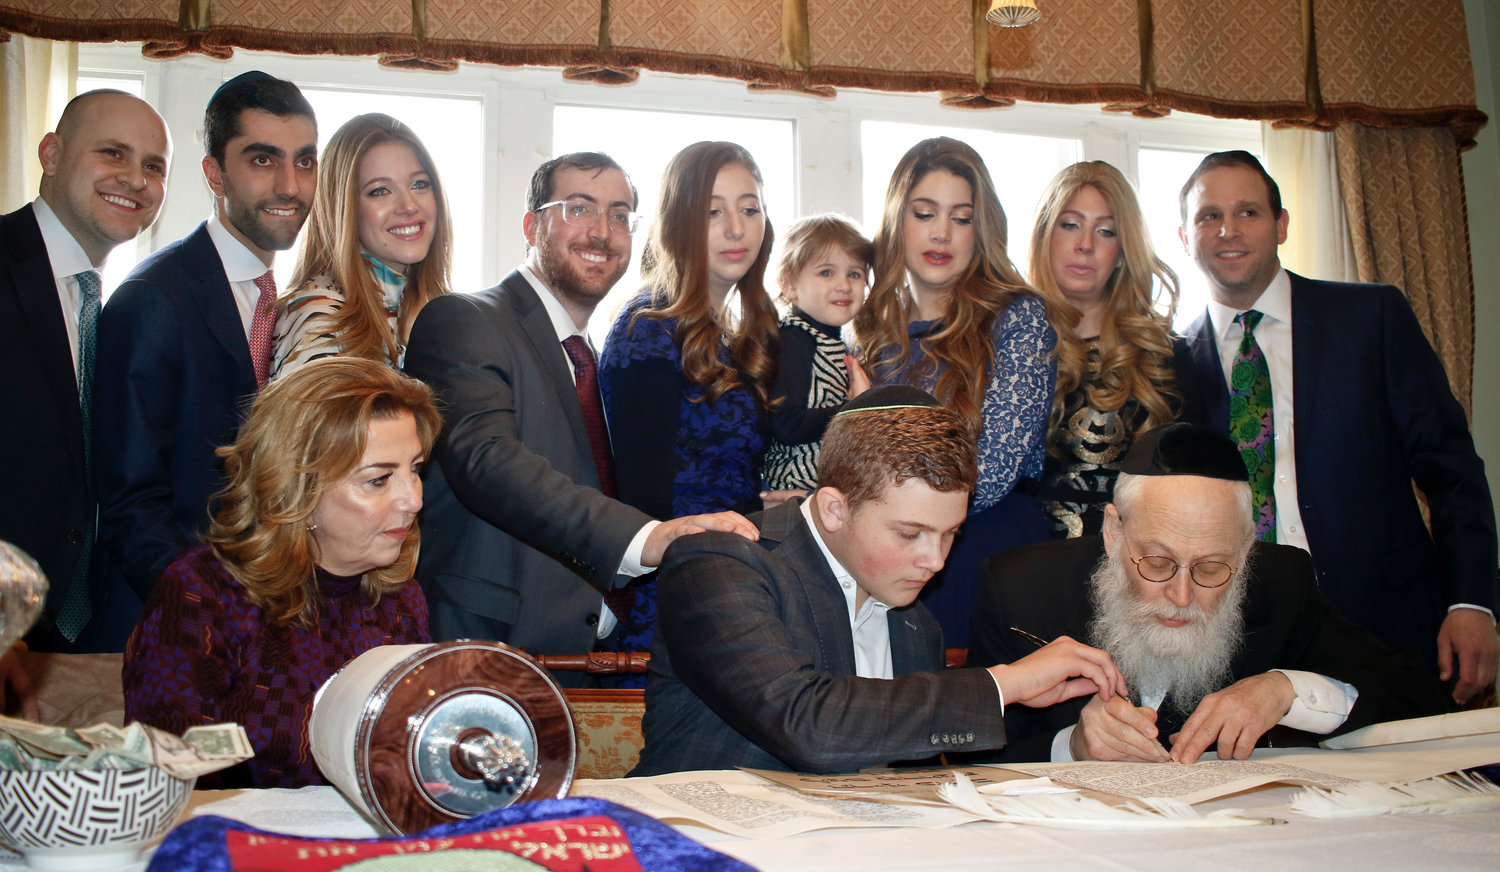 The Fried family gathered at the table as Rabbi Moshe Klein added the final letters to the torah. He was Joined at the table by Avi Fried, 15, center, and his mother Osmat, left.